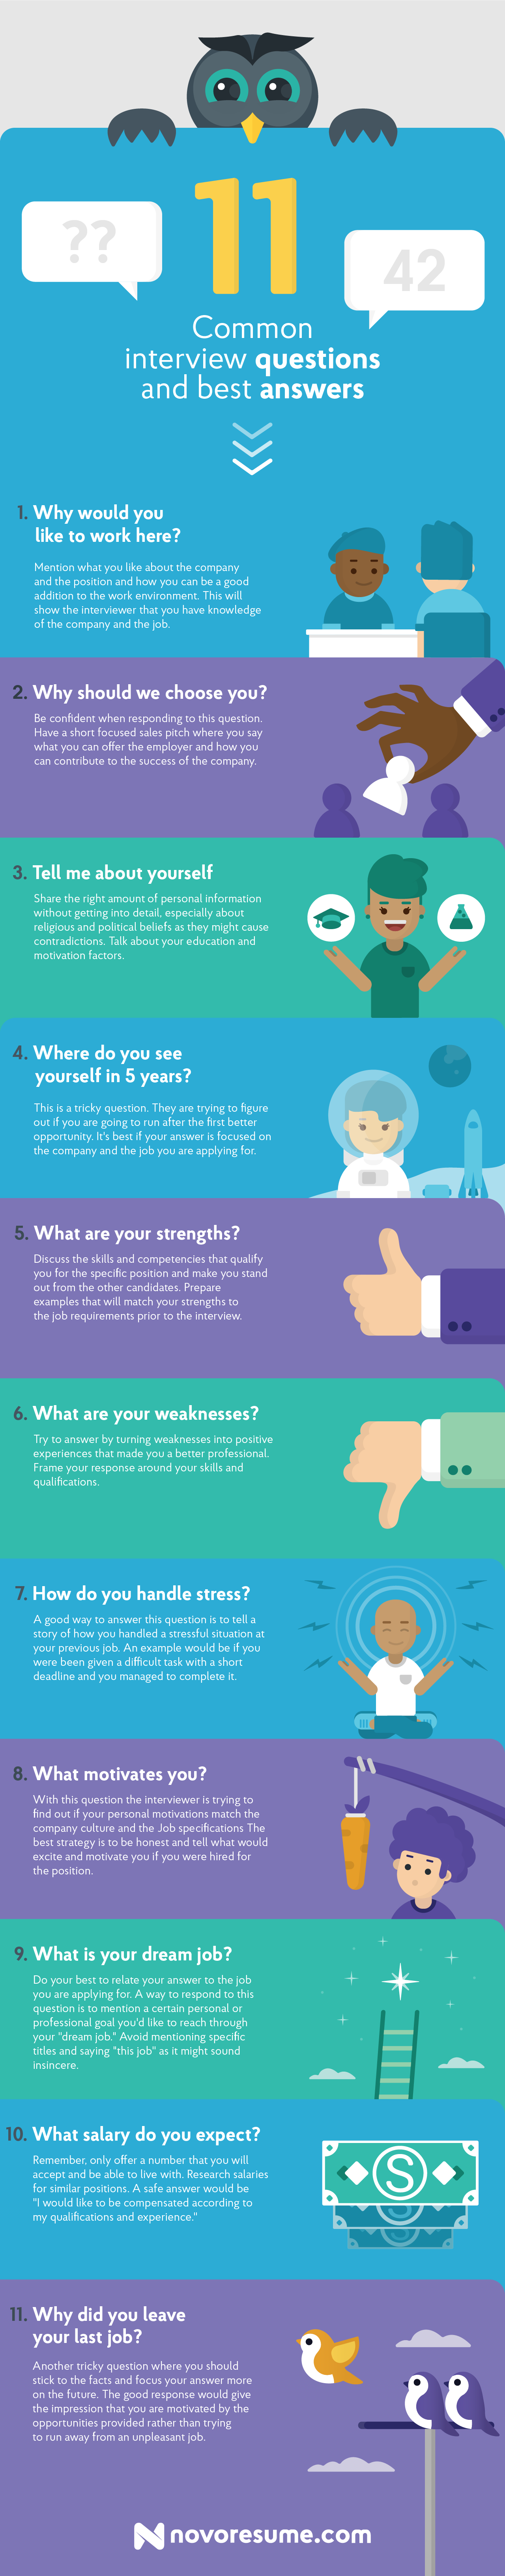 interview questions and answers info graphic